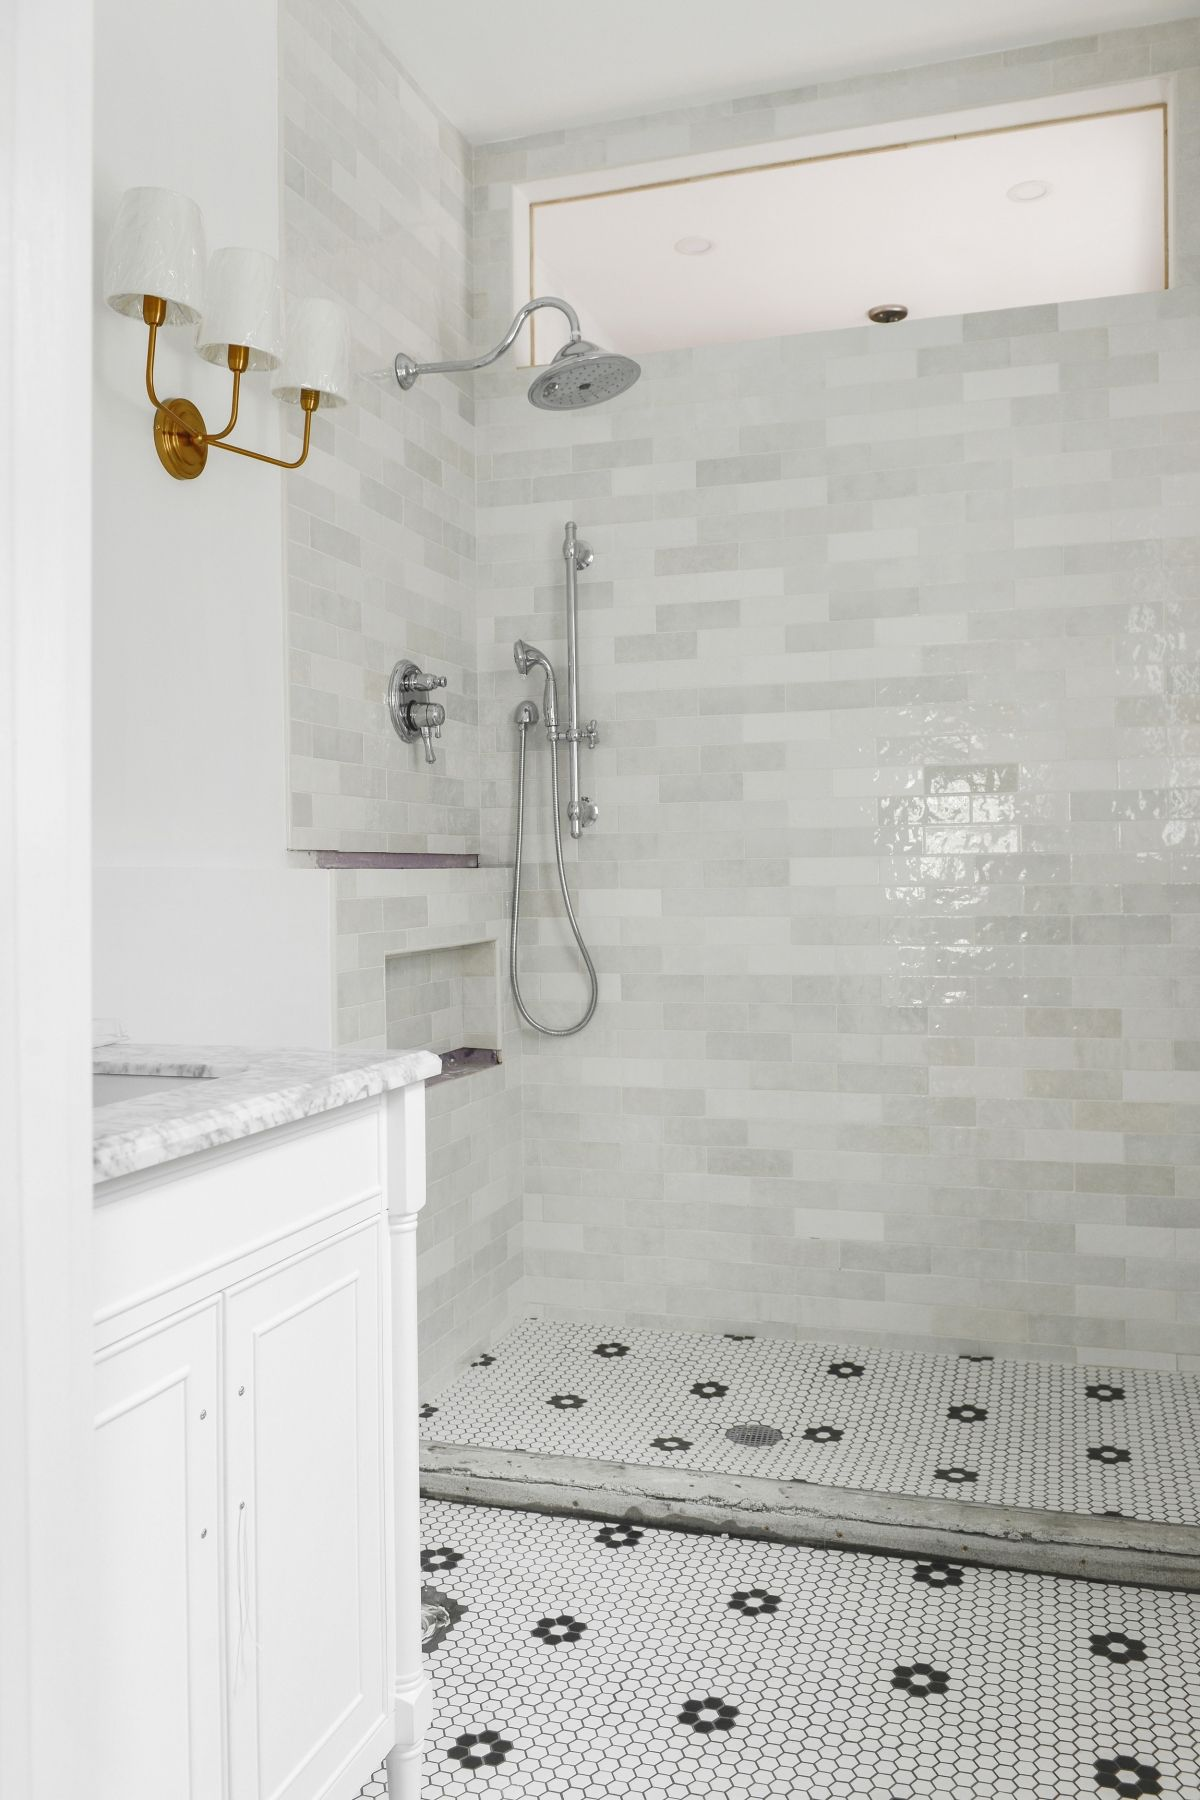 For This Shower I Used Pretty Inexpensive 12x12 Tiles And Added